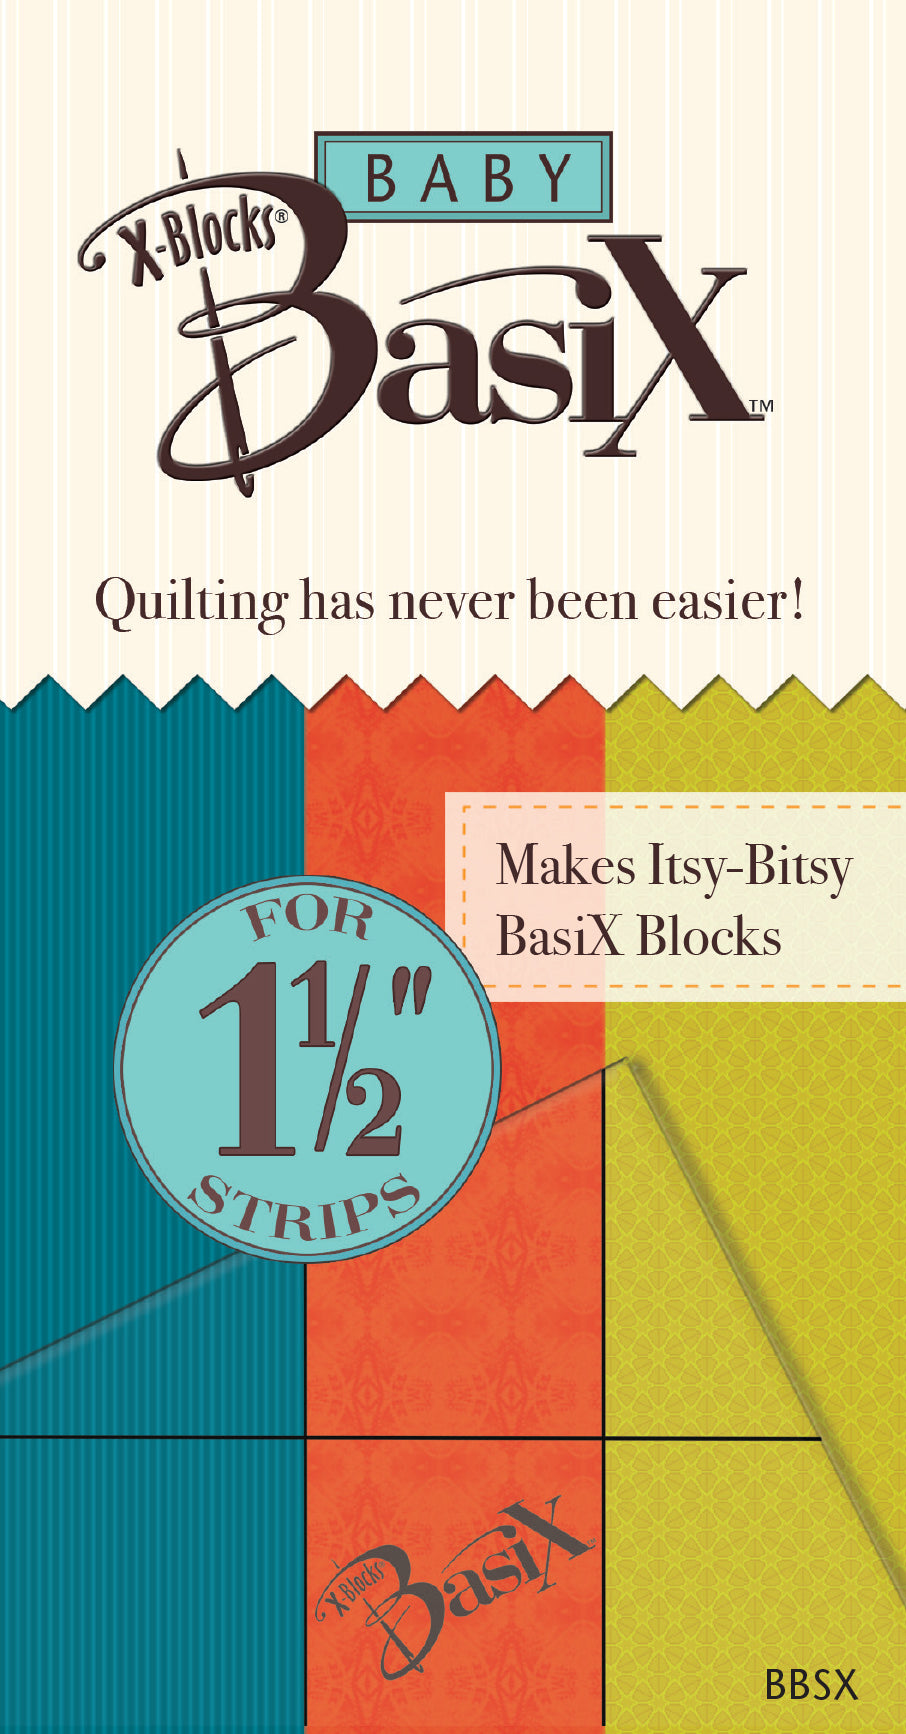 Baby BasiX Template by Cactus Queen Quilt Co